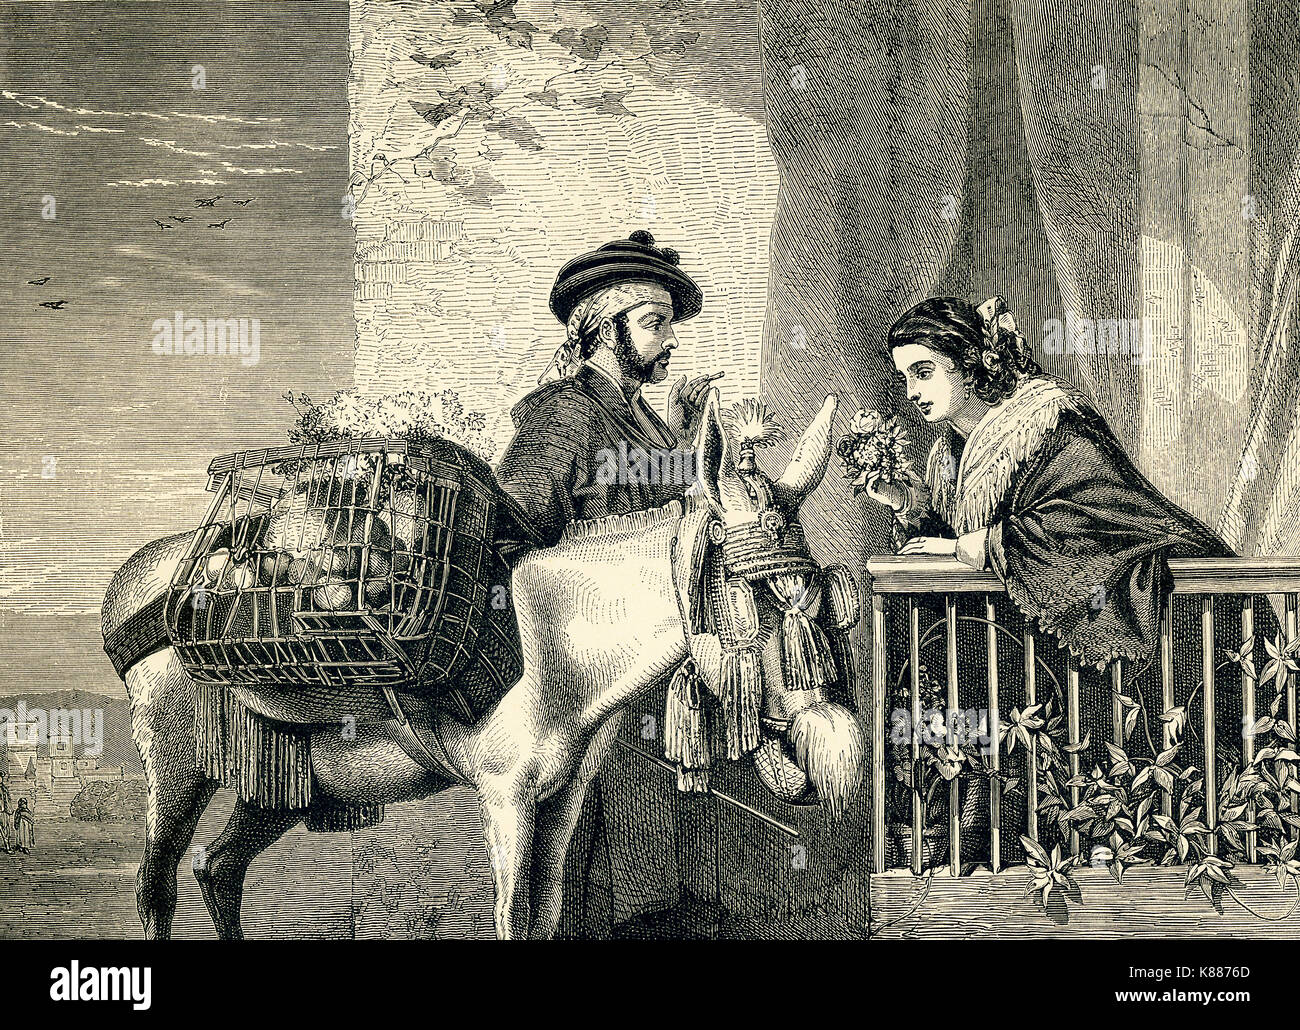 This engraving on wood accompanied an 1881 book on British Painters. This one is titled 'Spanish Flower Seller,' by Richard Ansdell (1815-1885), an English painter of animals and genre scenes. - Stock Image